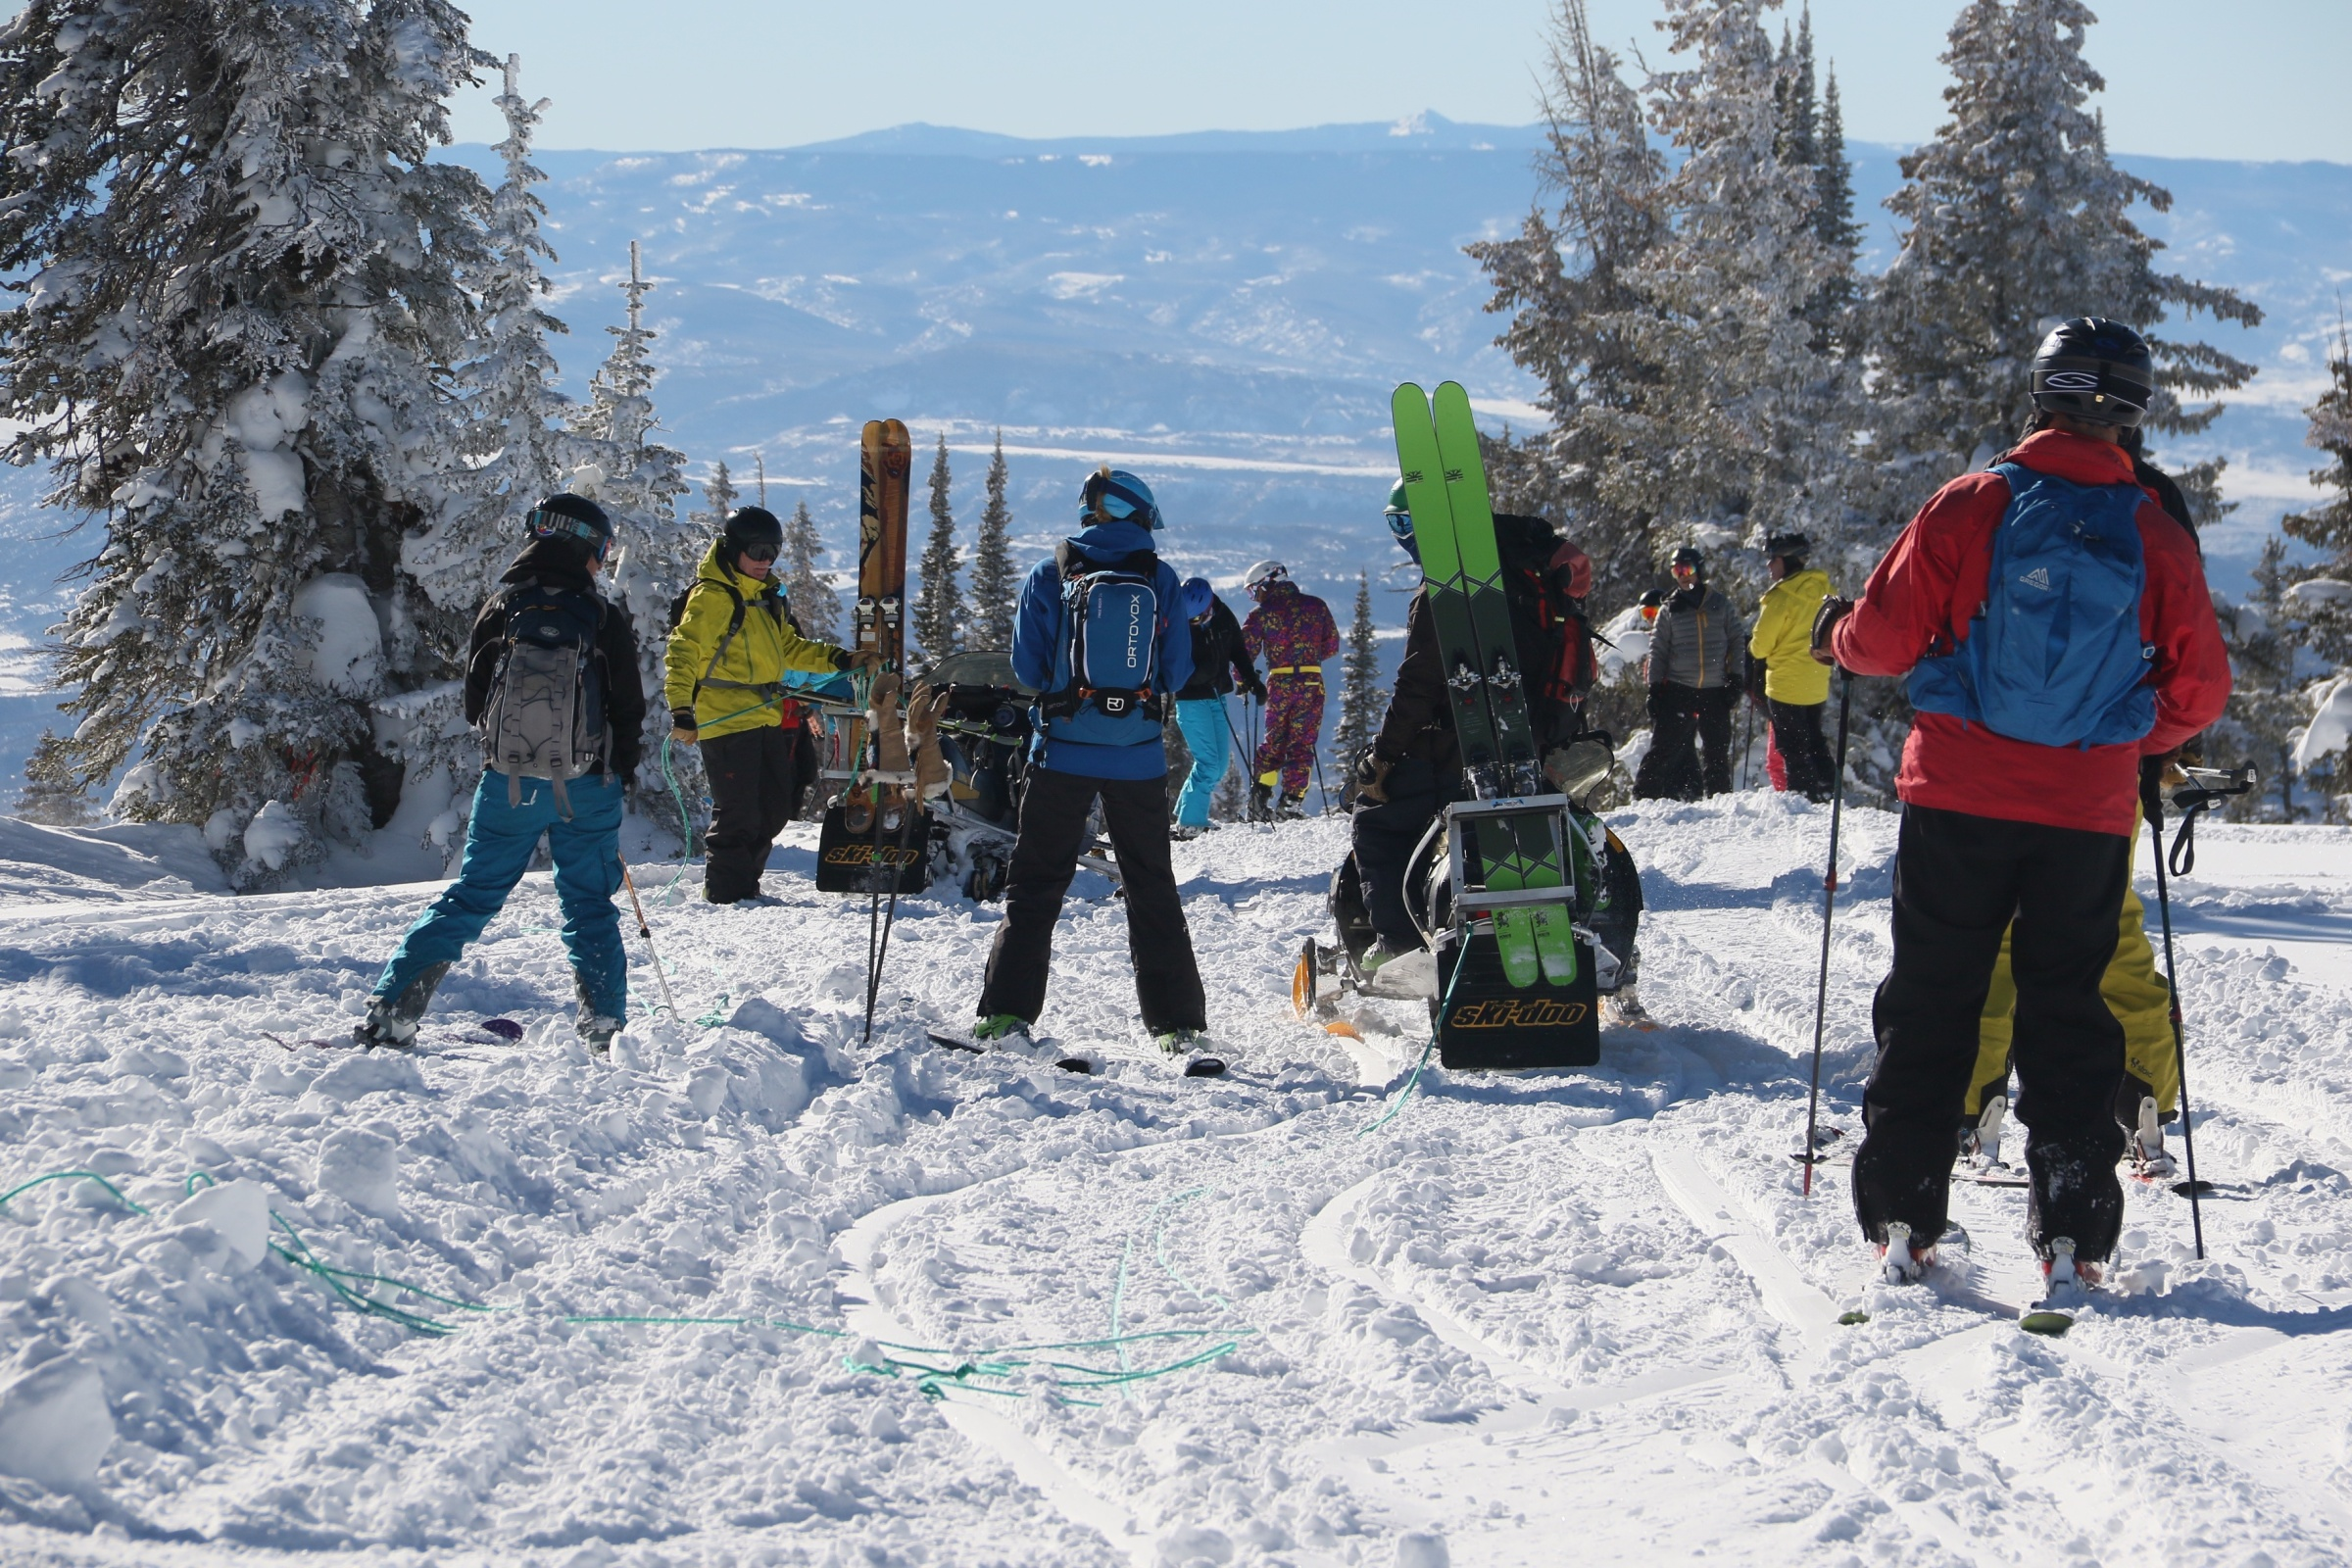 """Steamboat Powdercats has settled a lawsuit against a former guide, arguing he is using the company's """"trade secrets"""" in an upcoming guidebook on snowmobile-accessed skiing on Buffalo Pass. The area has seen an increase in the number of skiers using snowmobiles to access remote snowfields. (Provided by Steamboat Powdercats)"""